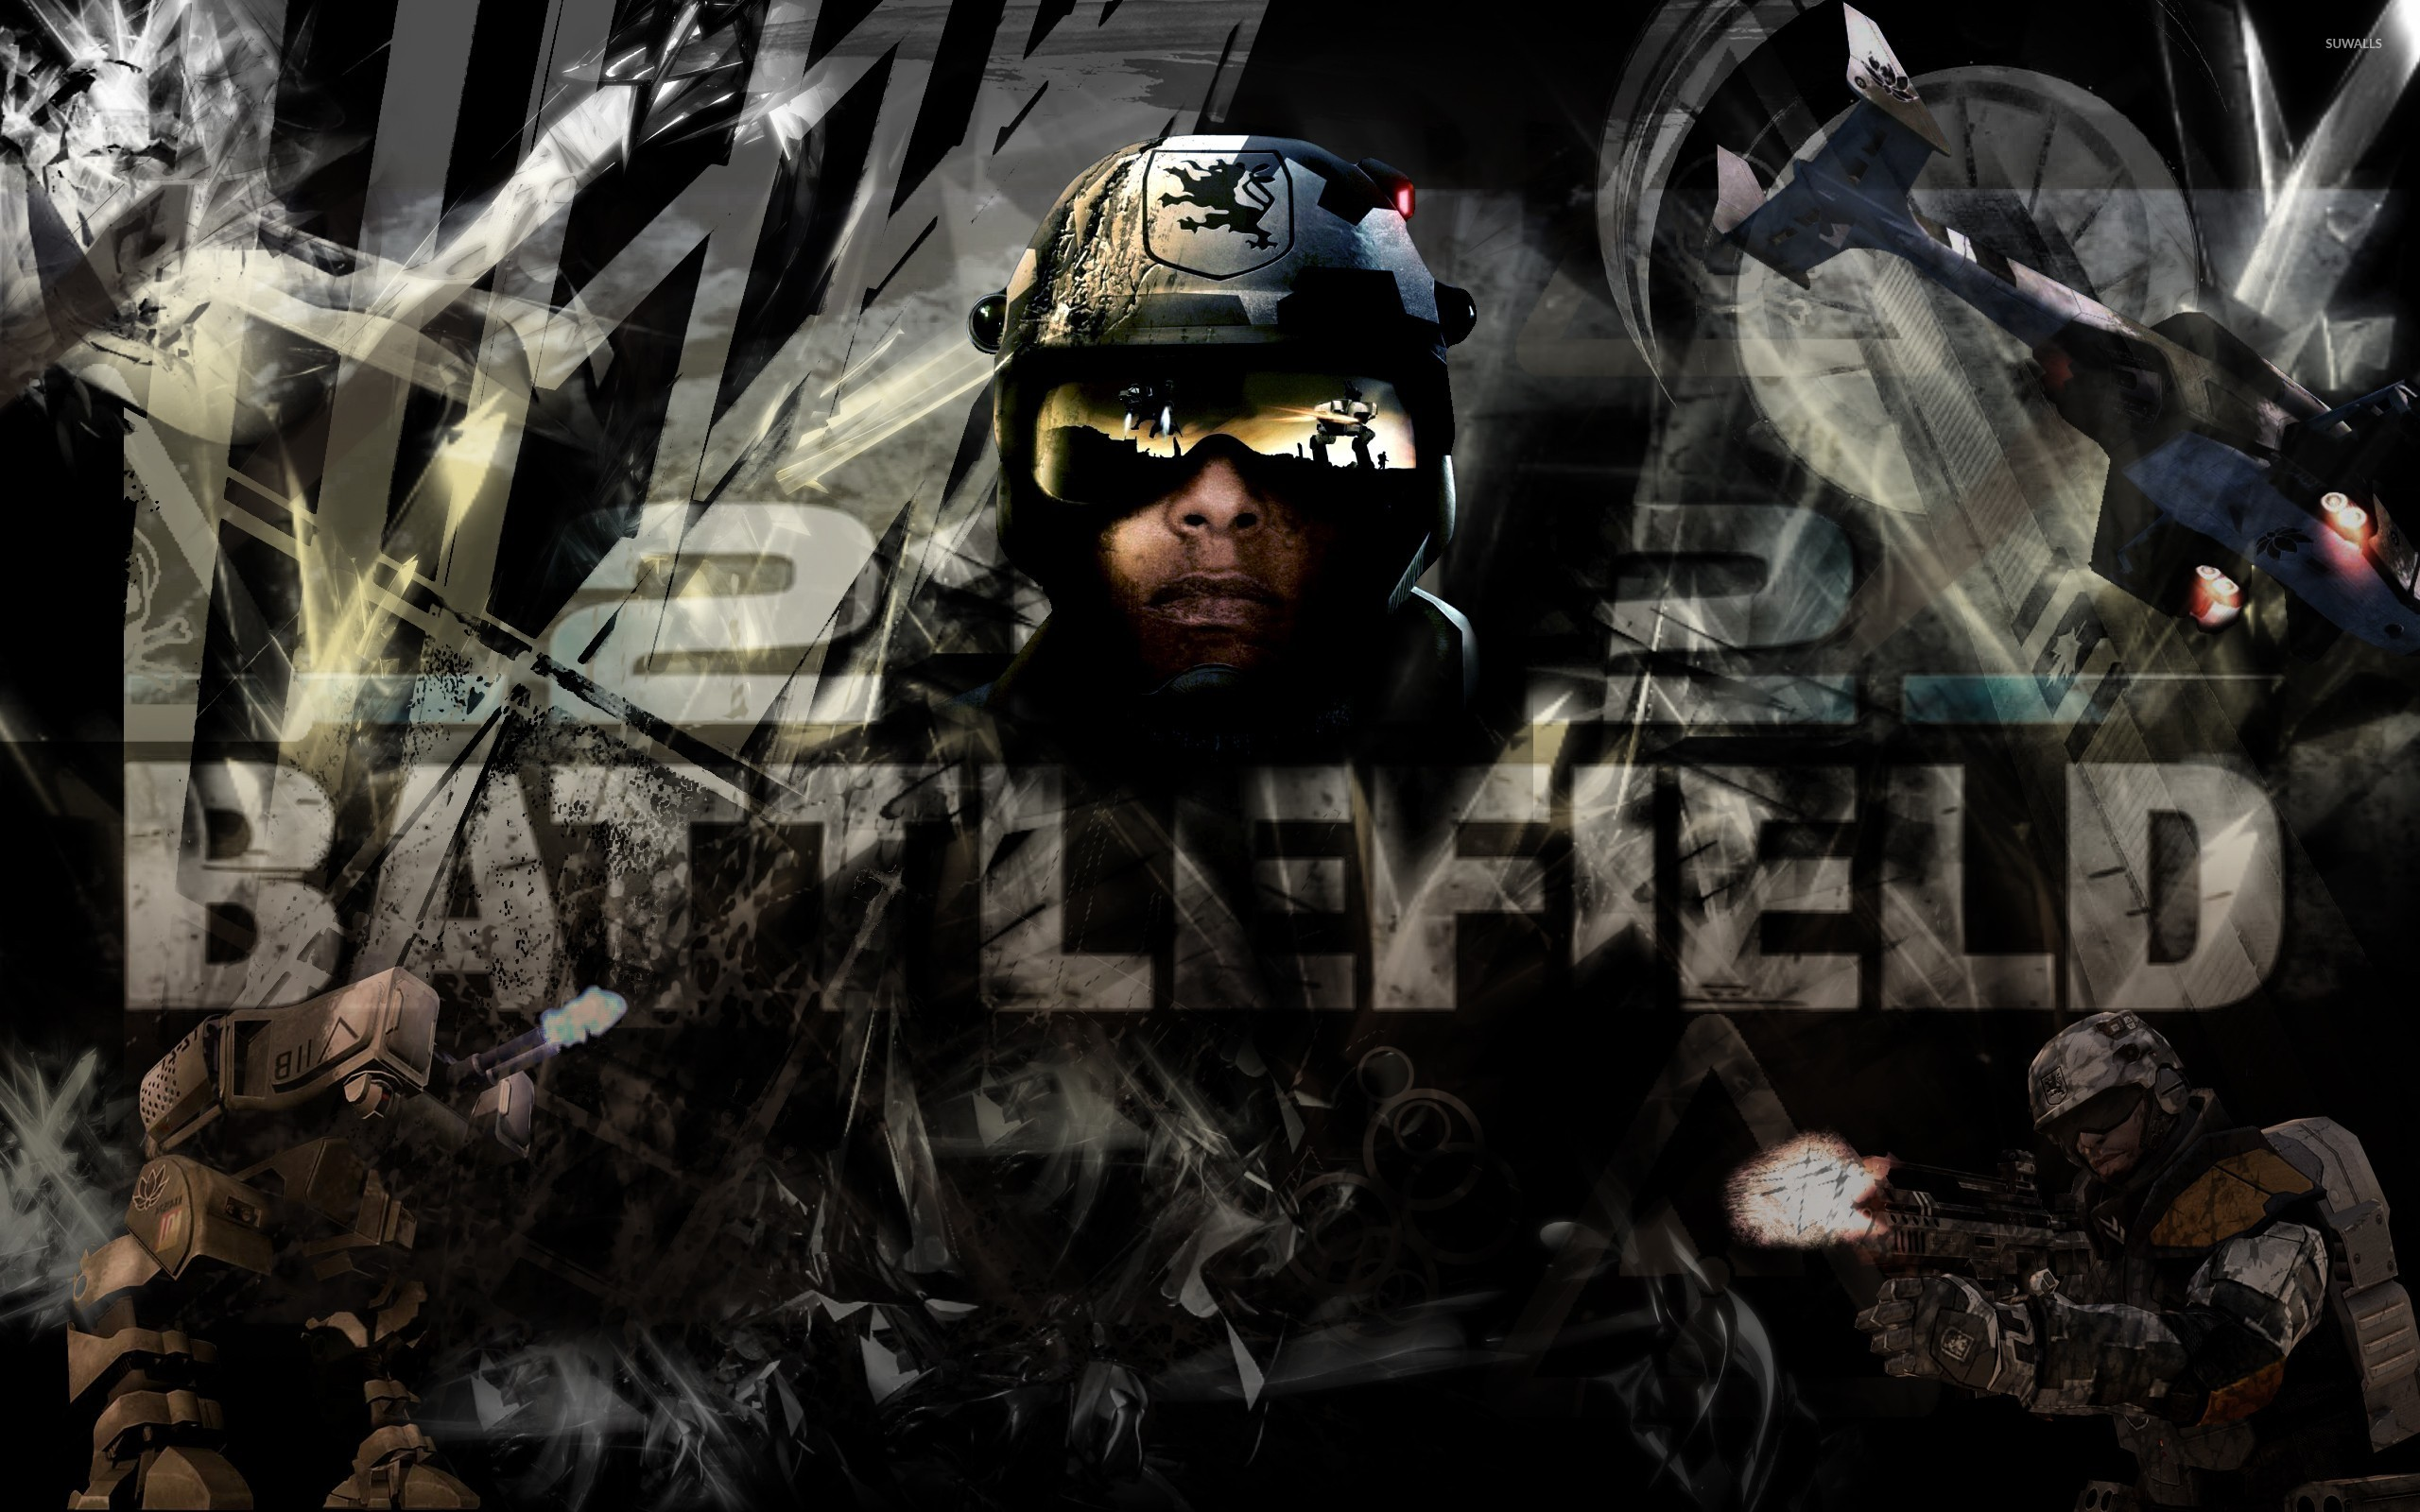 battlefield 2142 [2] wallpaper - game wallpapers - #43233